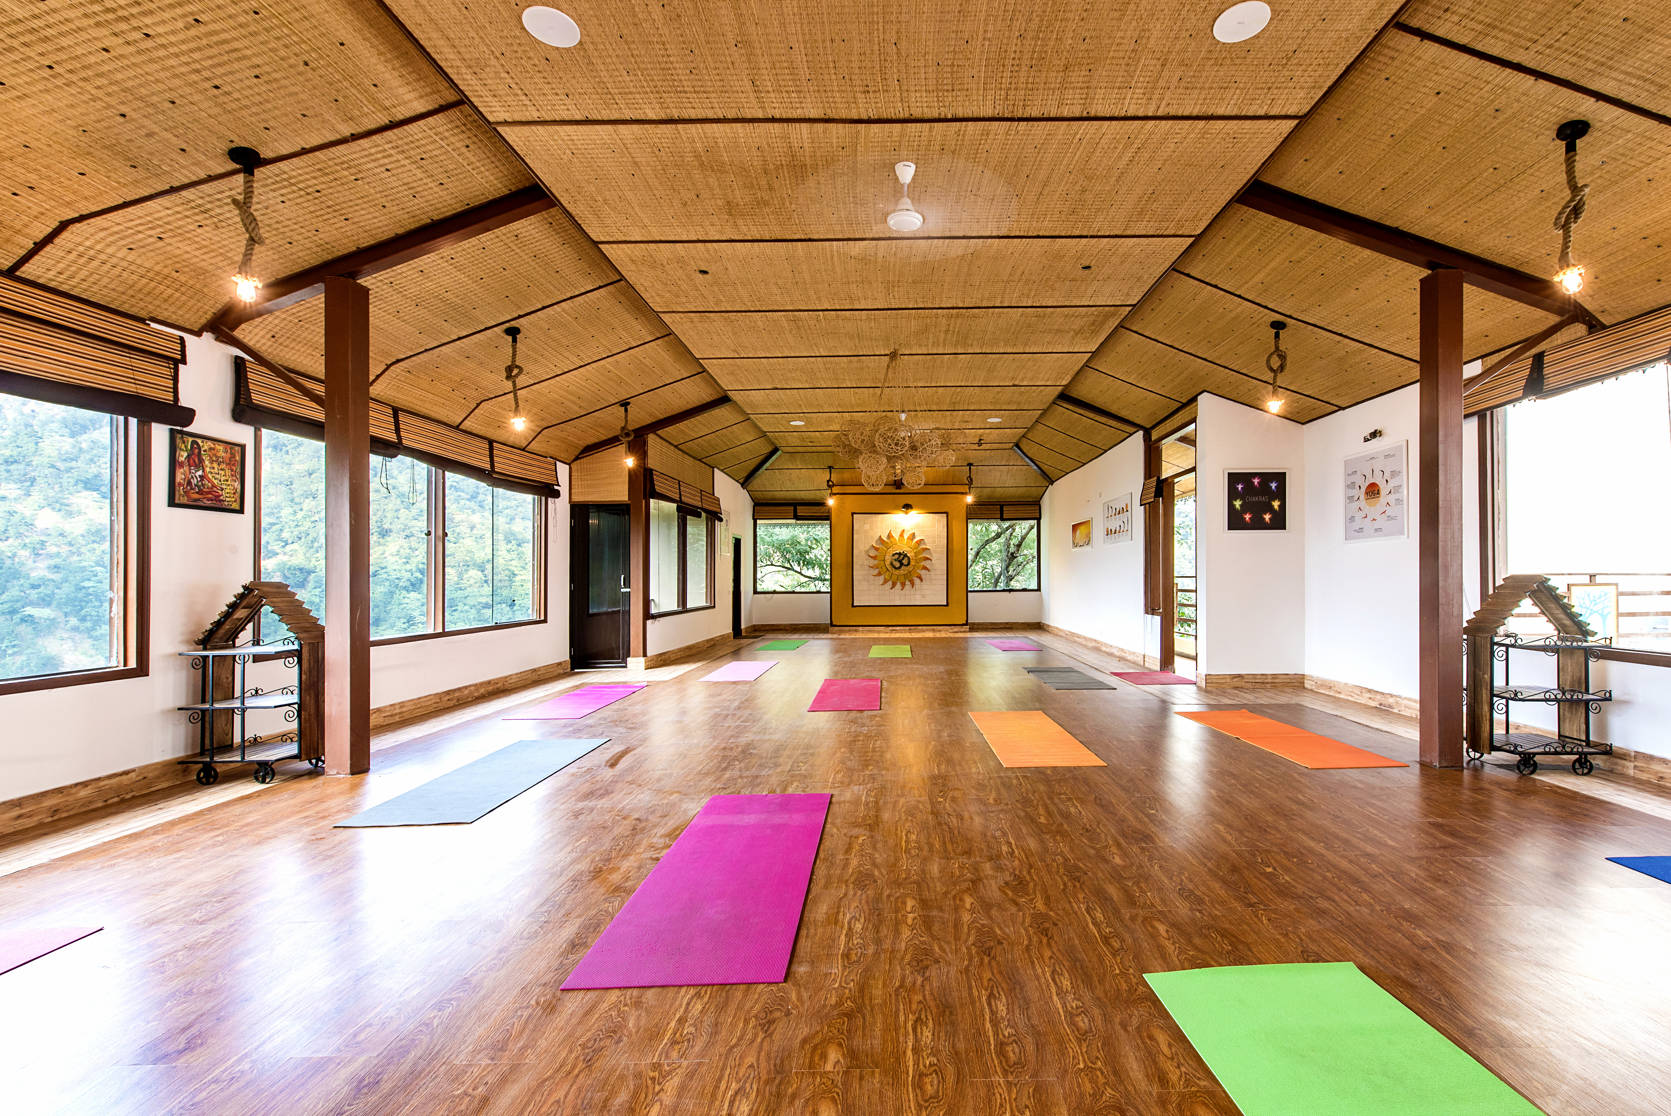 Best Facility for Yoga Class in Rishikesh is at Veda5 Ayurveda and Yoga Luxury World-Class Retreat in the Himalayas in Rishikesh India